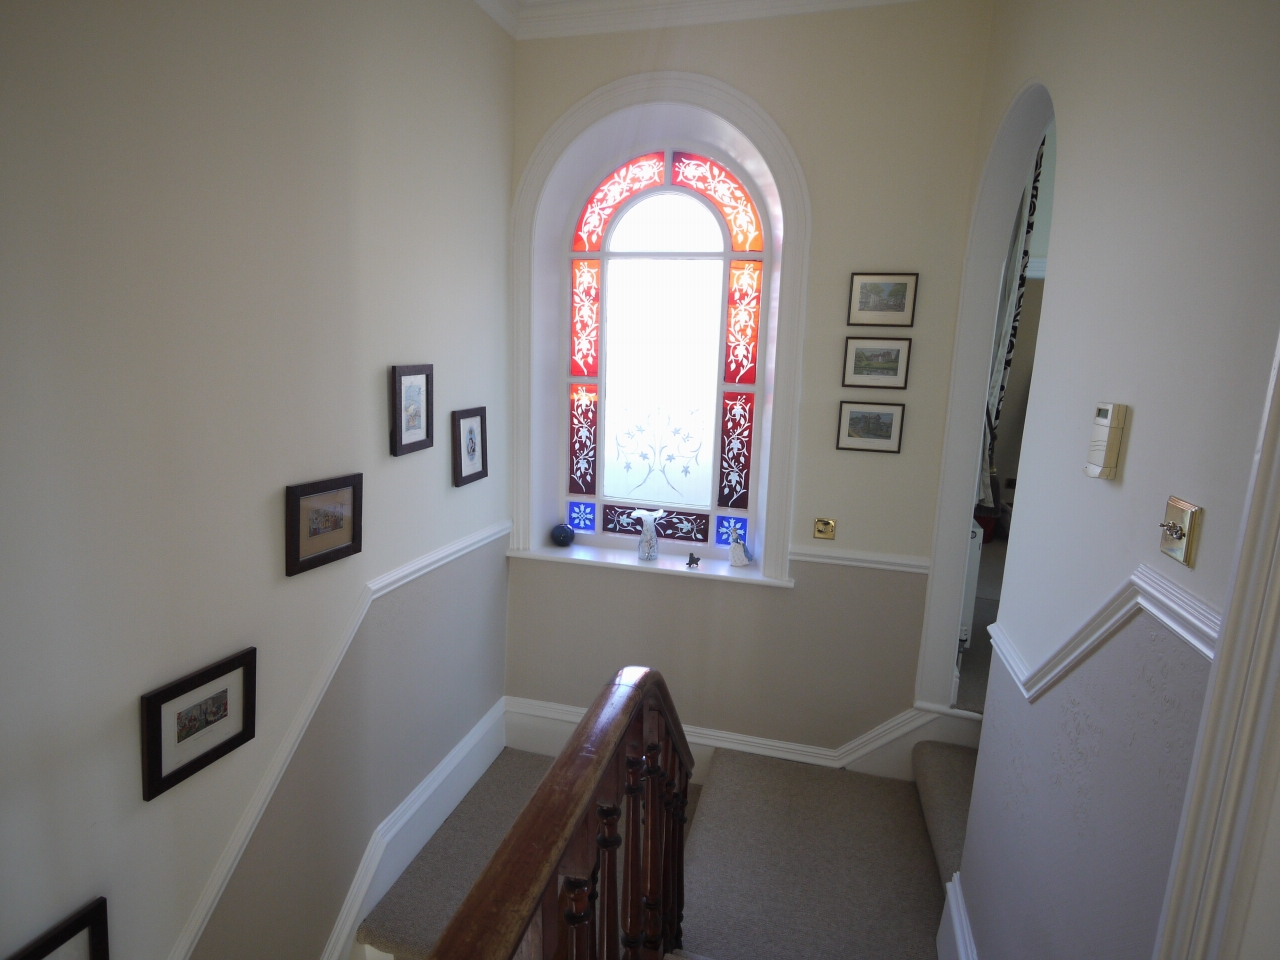 5 bedroom semi-detached house For Sale in Halilfax - Photograph 11.